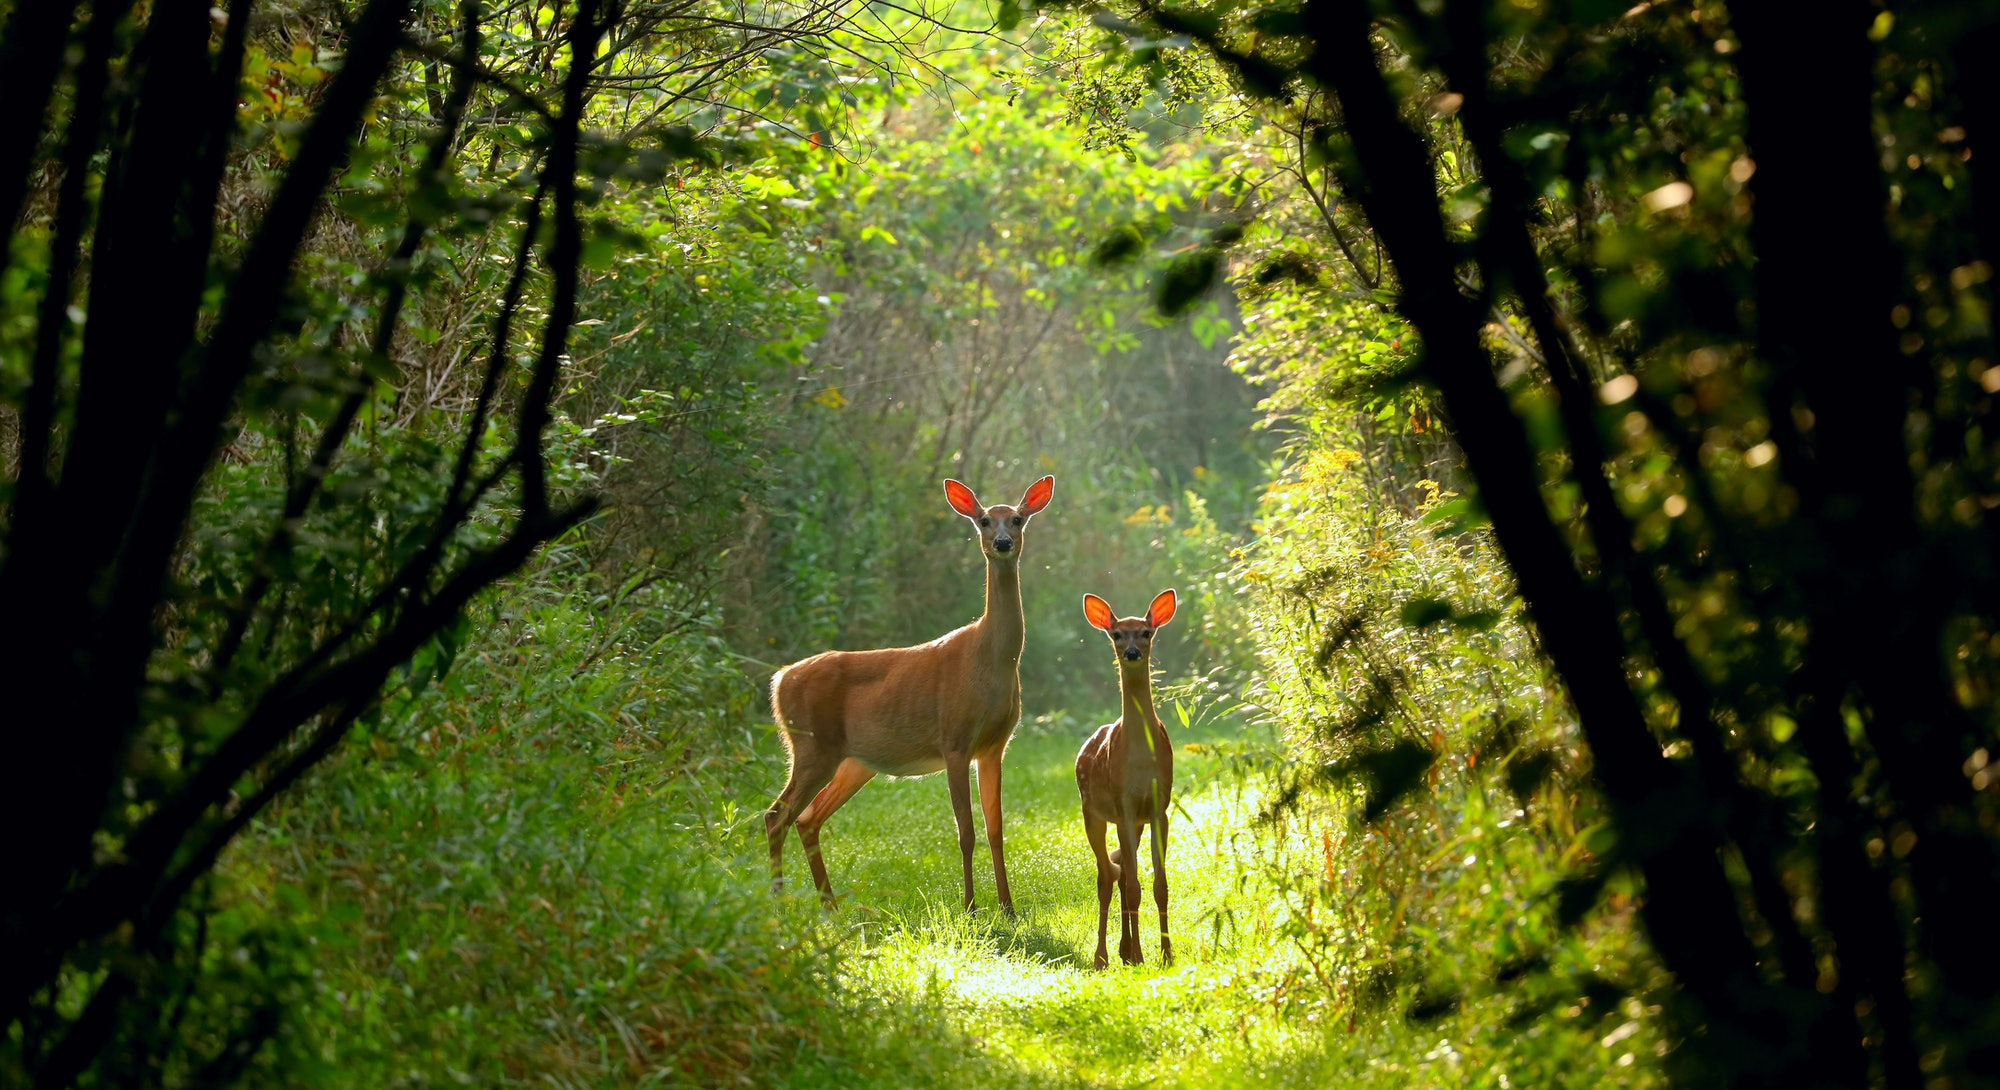 White-tailed deer(Odocoileus virginianus), Virginia deer - hind with fawn on a forest path at dawn,north America,Wisconsin,whitetail